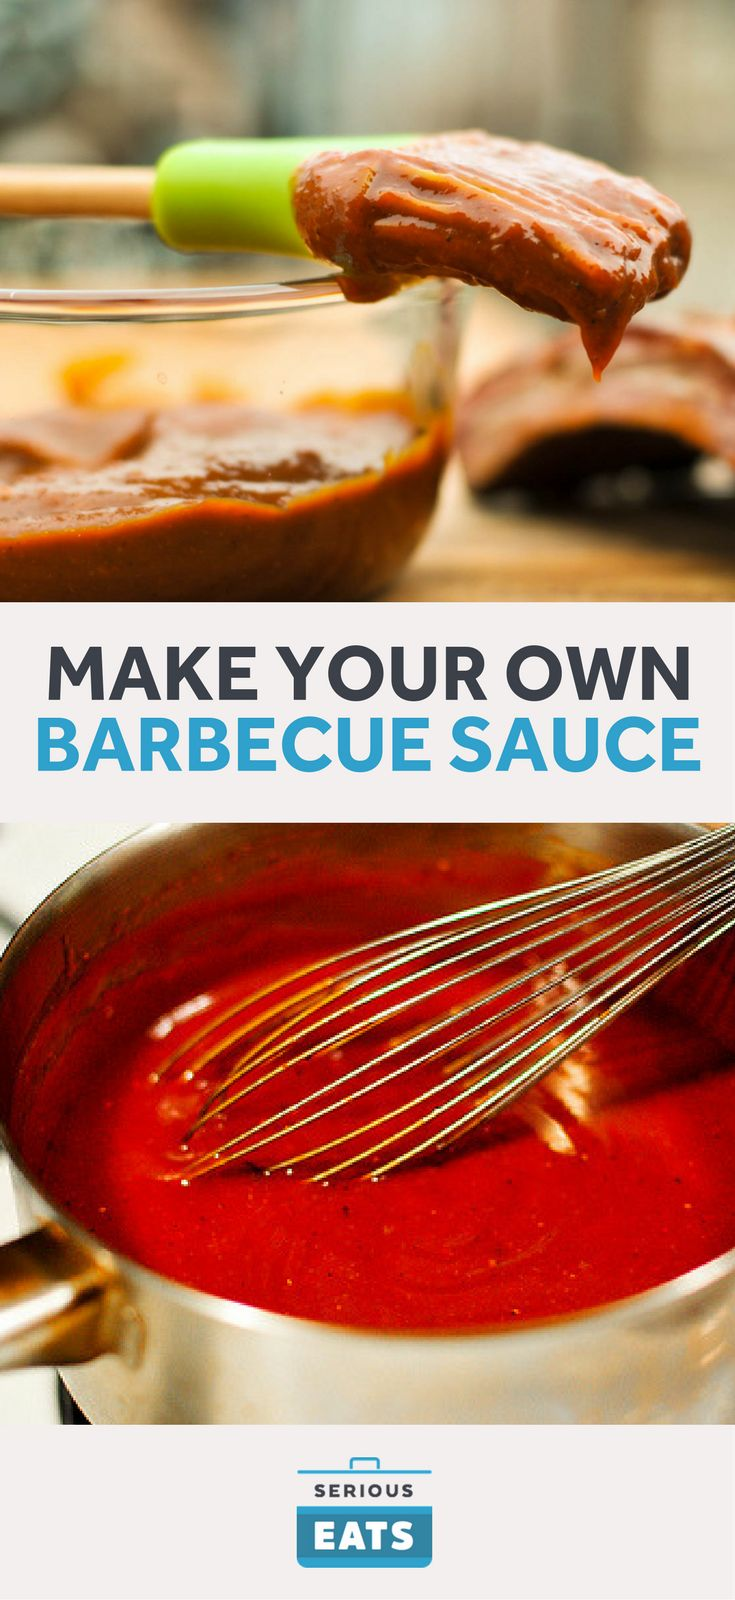 24 best barbecue images on pinterest bbq beef barbecue and